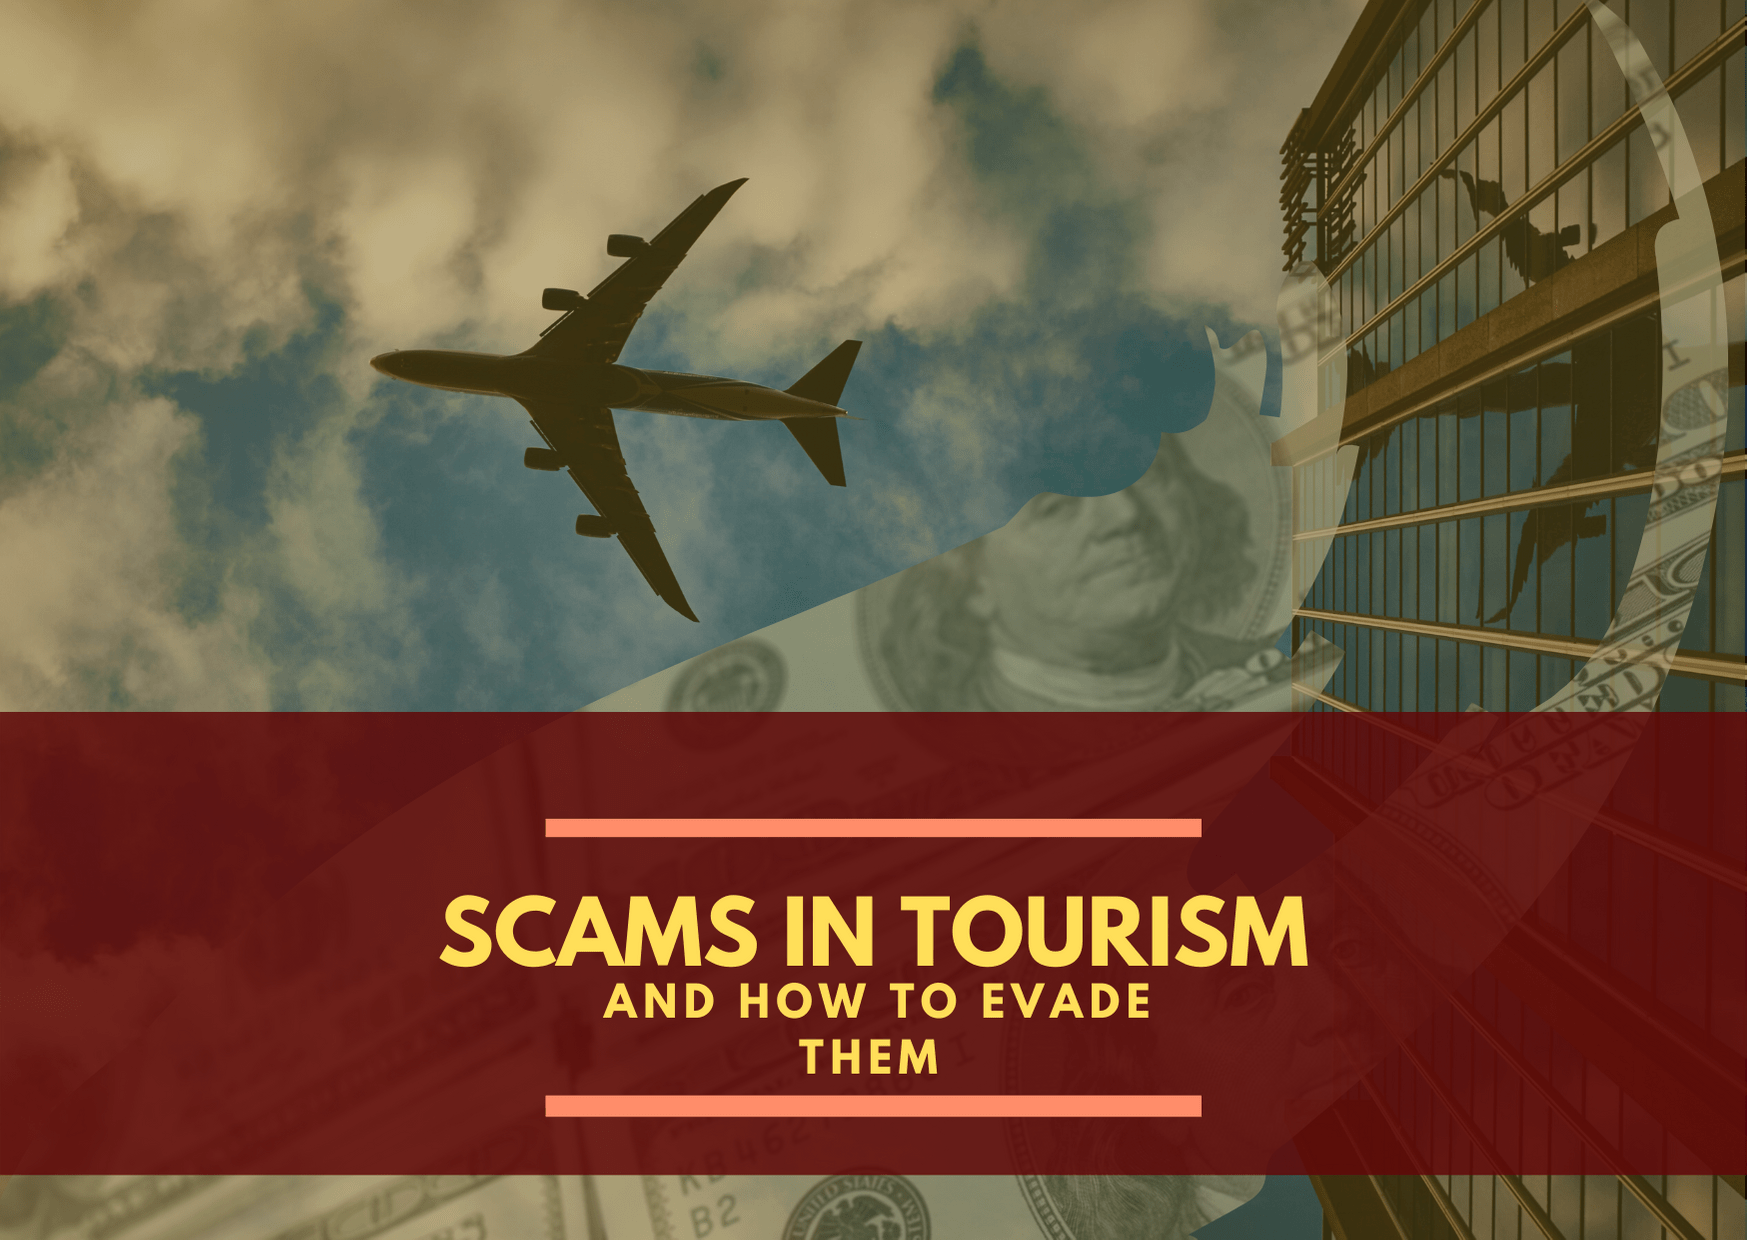 Tourism scams